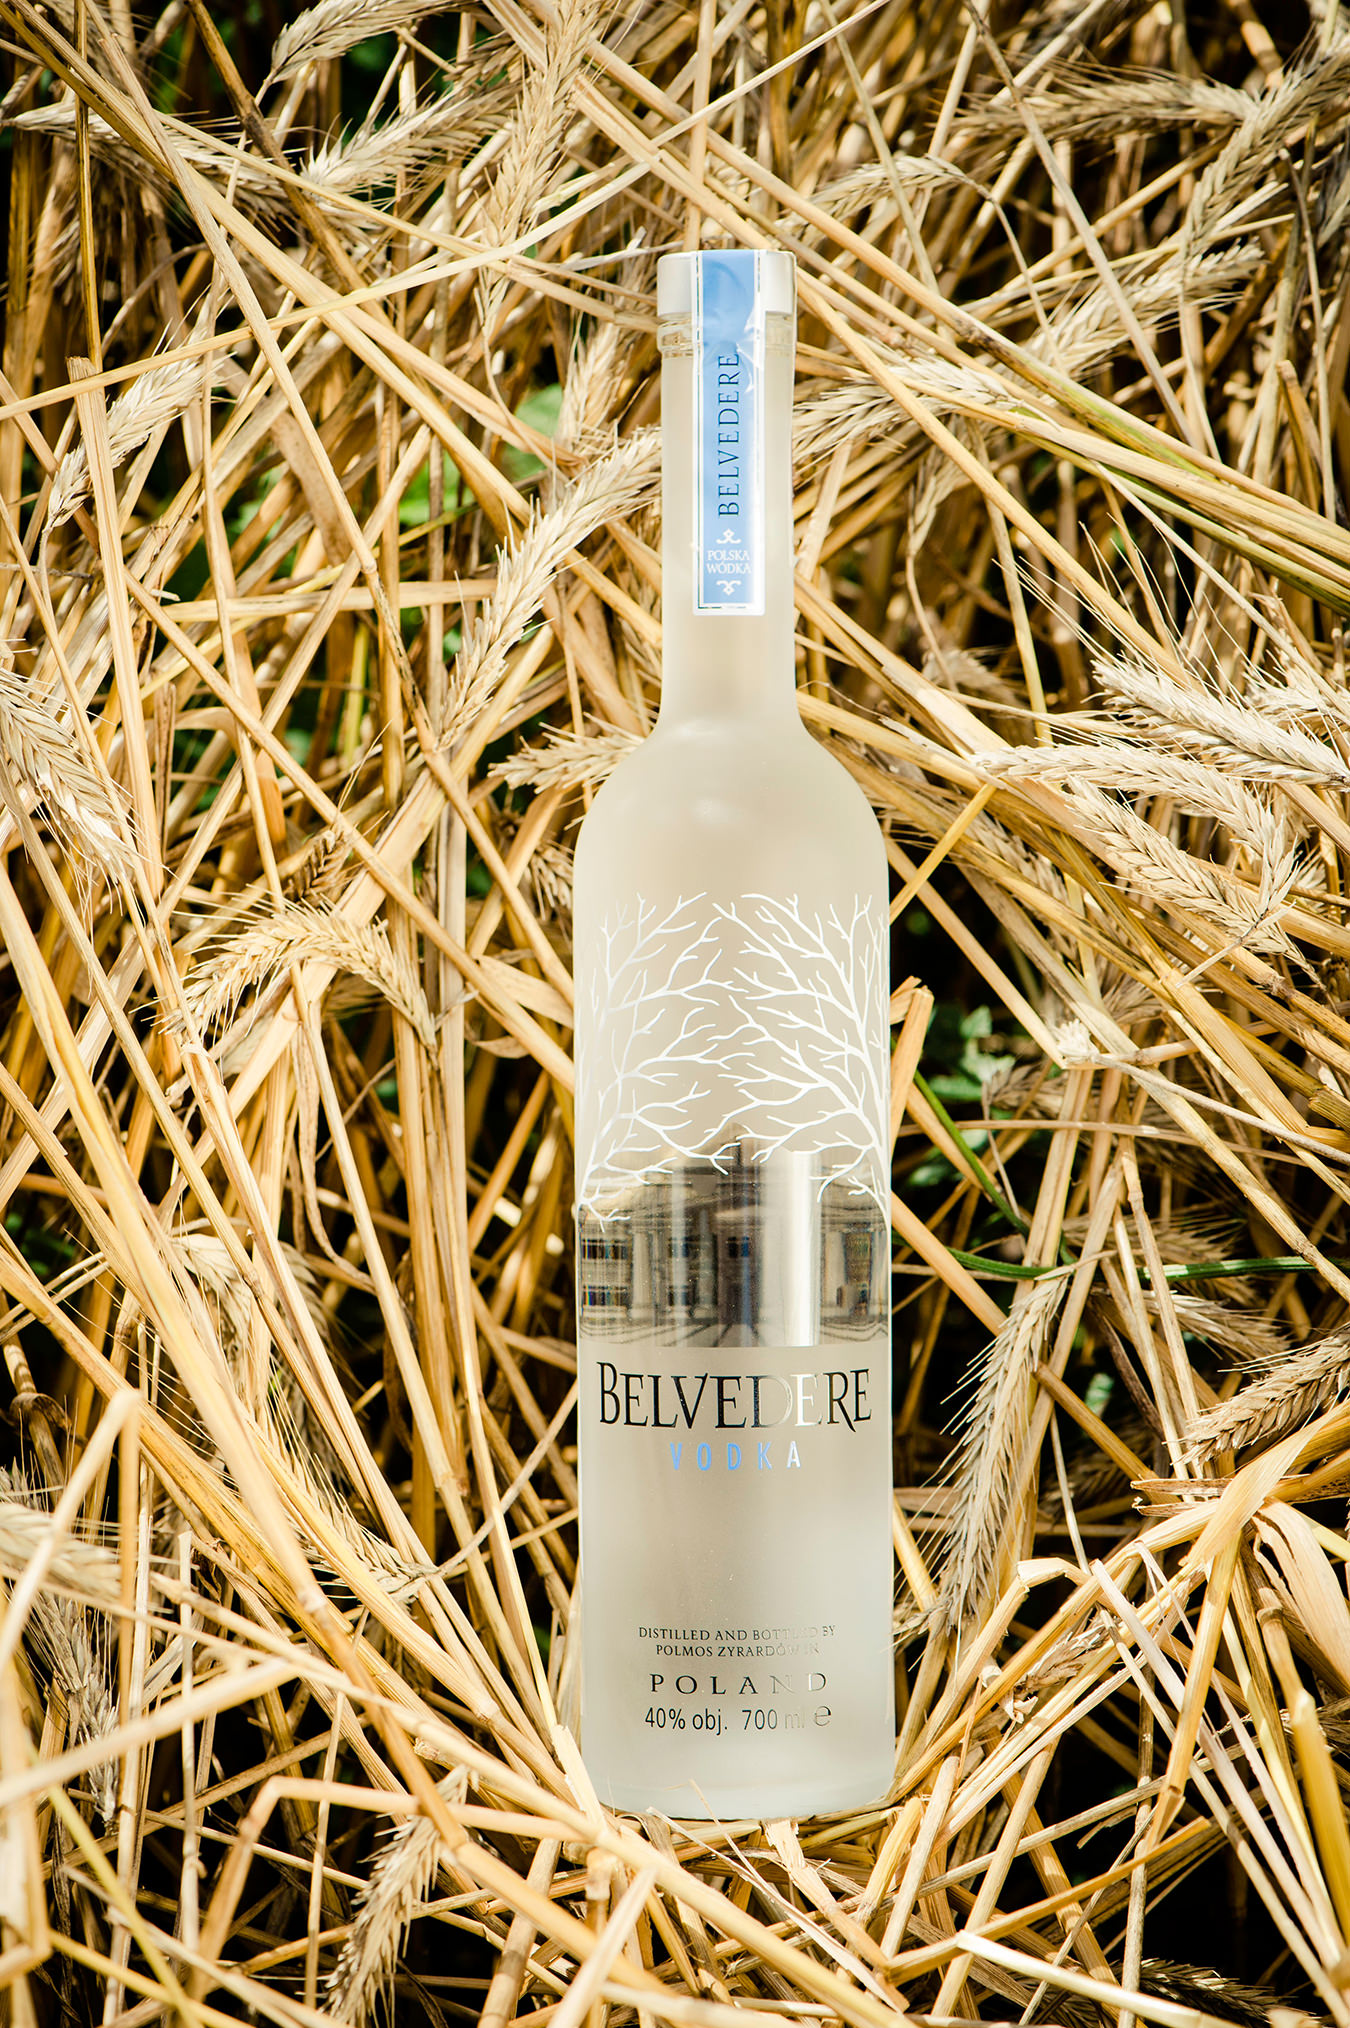 NUVO Magazine FYI Drink: Belvedere Vodka